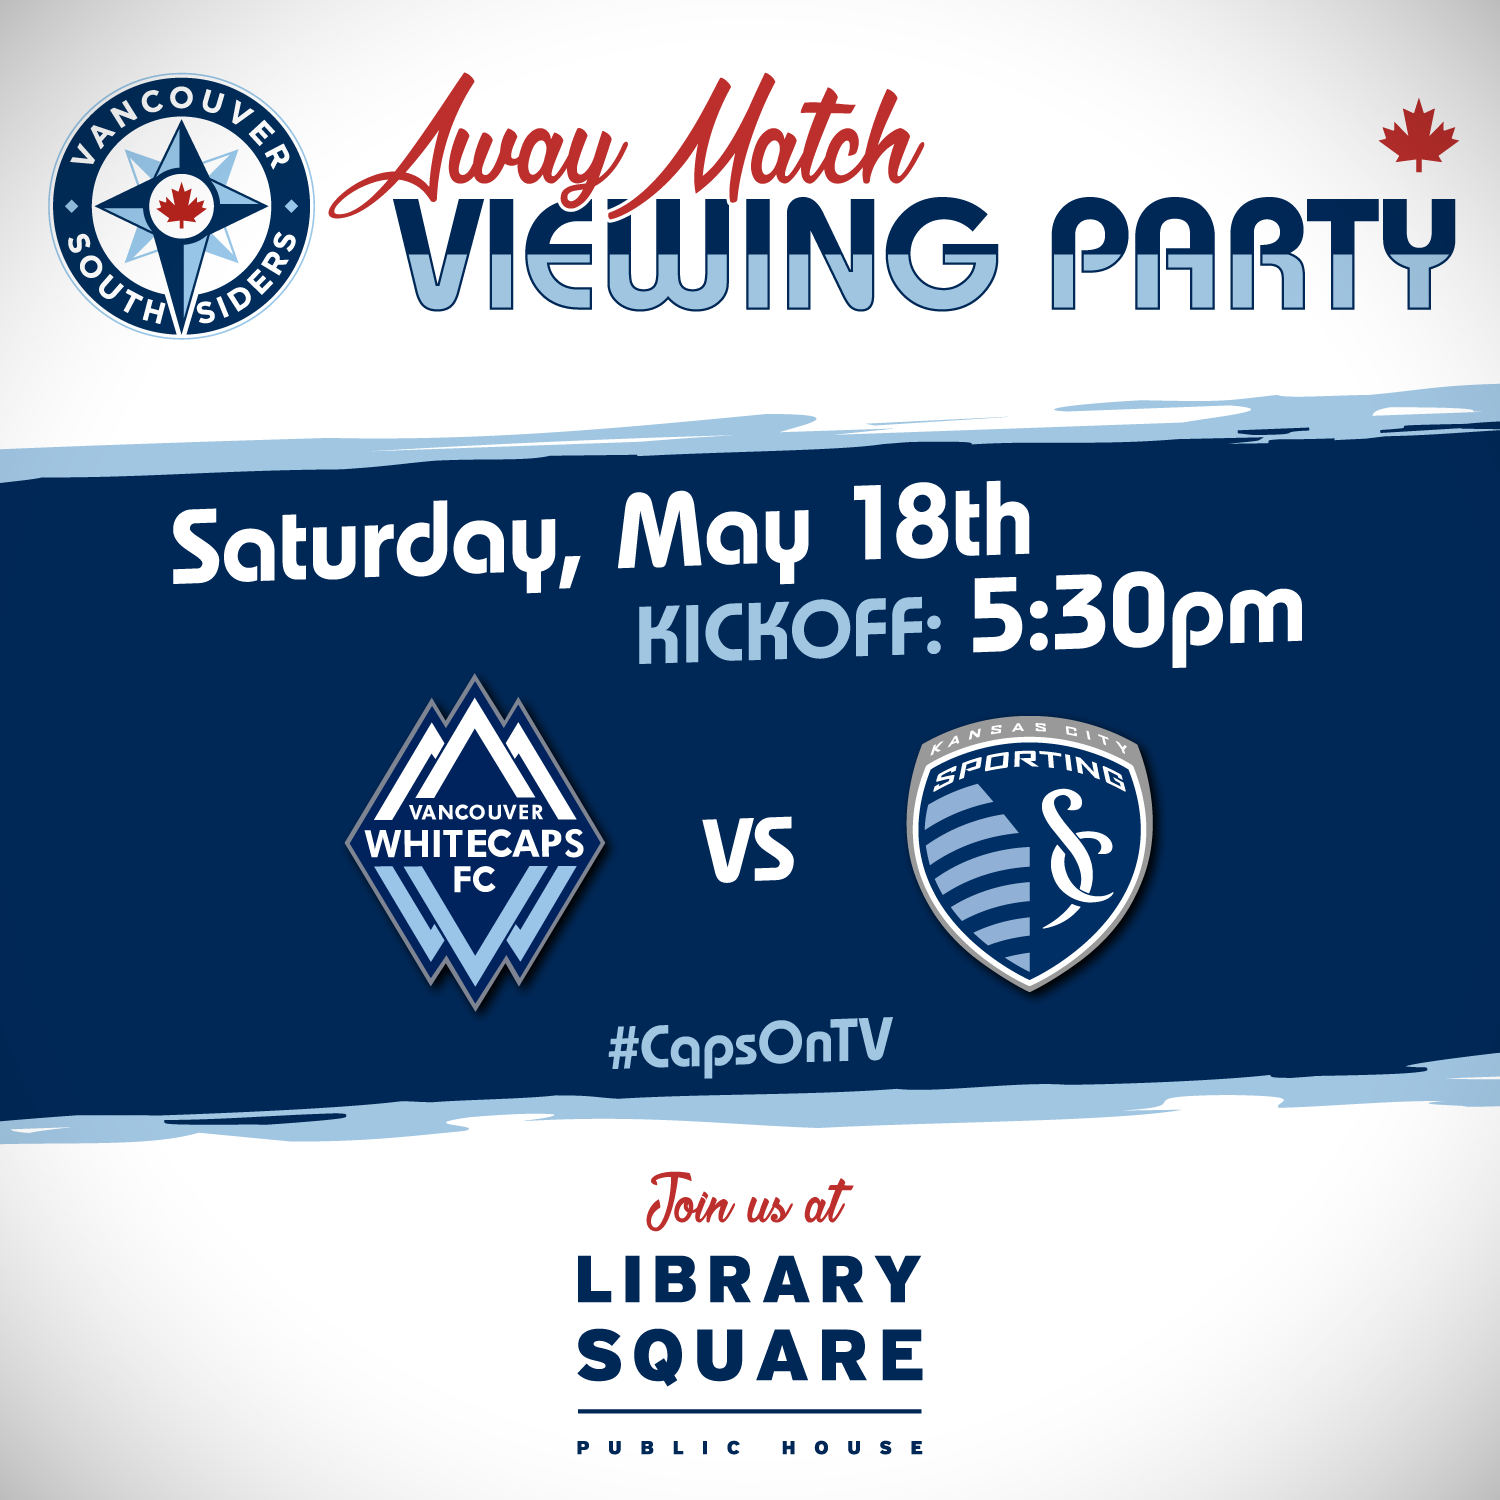 Away match viewing party: Saturday, May 18th, kickoff 5:30pm @ Library Square